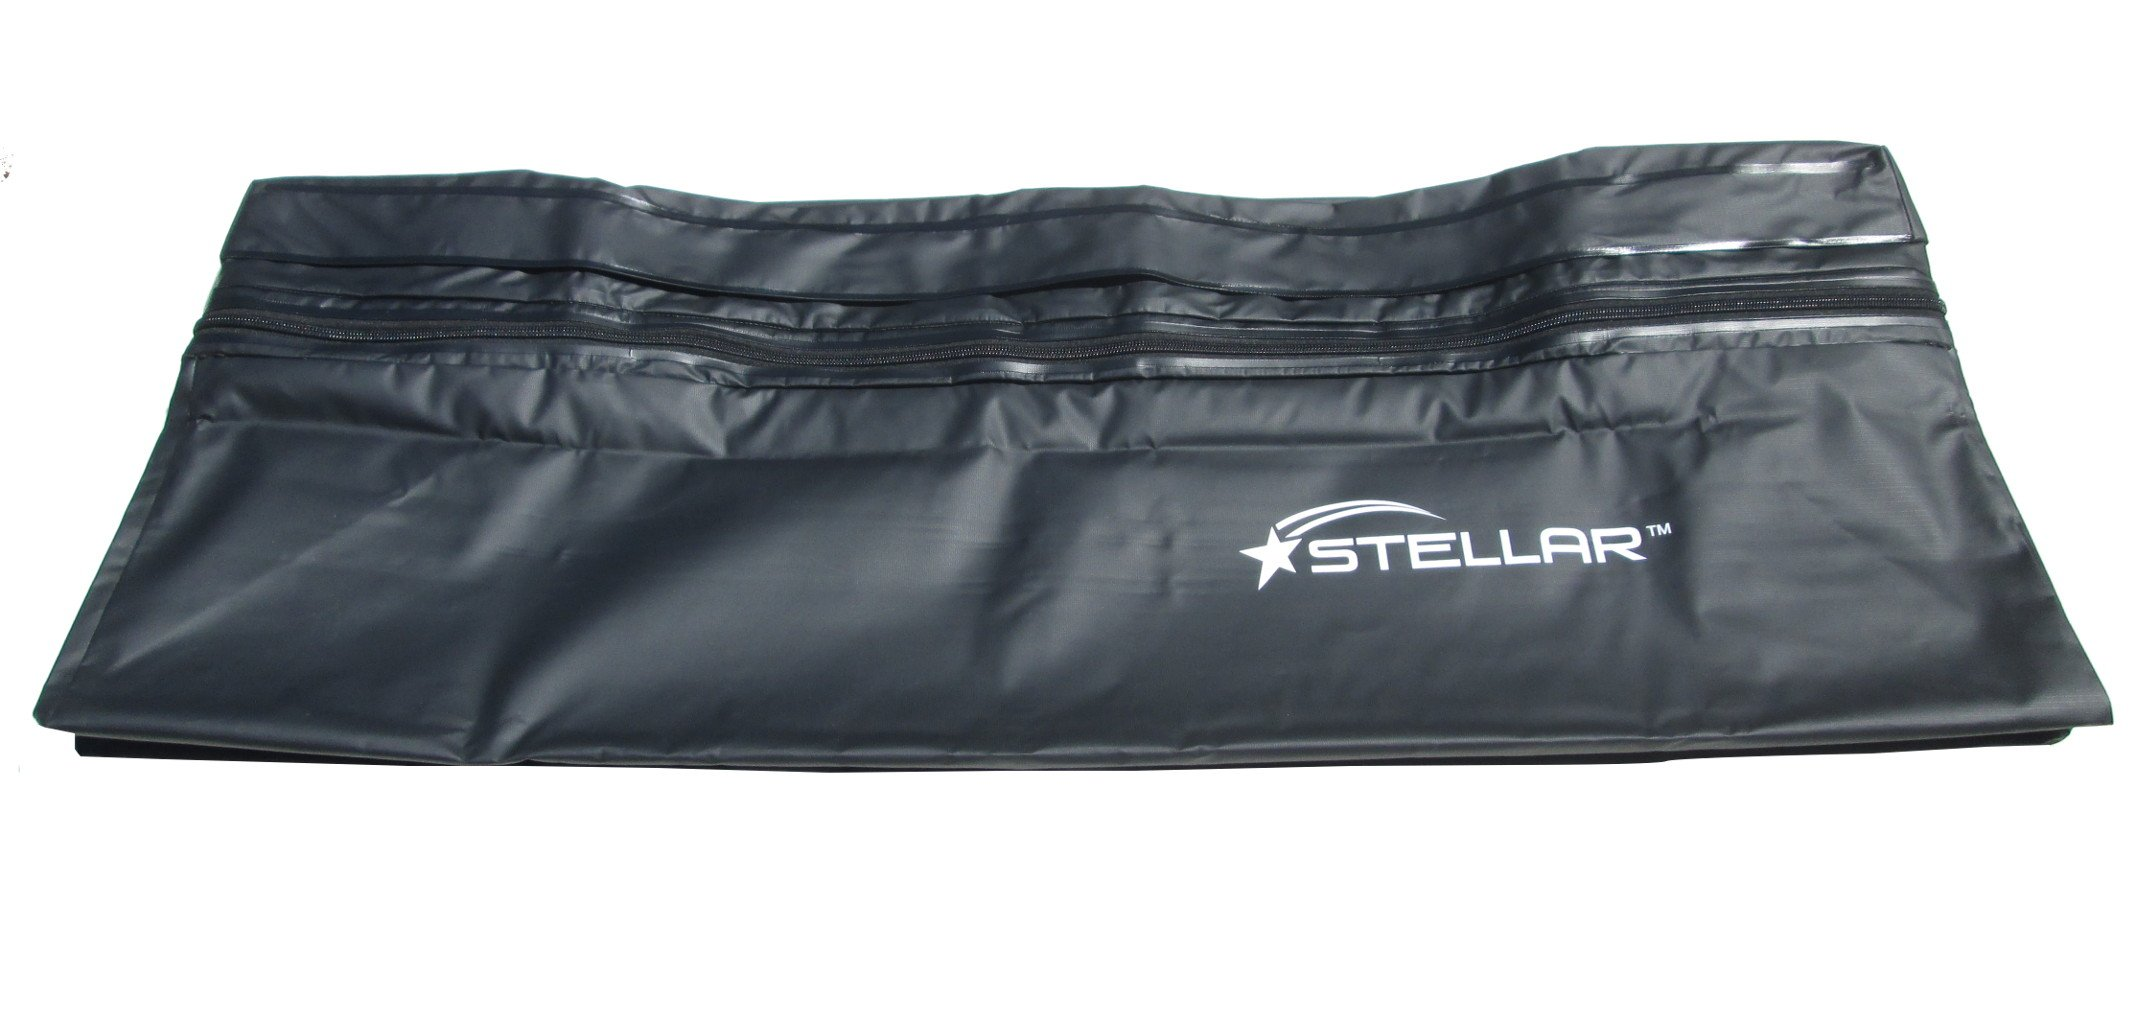 Stellar 10102 Expandable Waterproof Cargo Bag for Hitch Baskets by Stellar (Image #7)